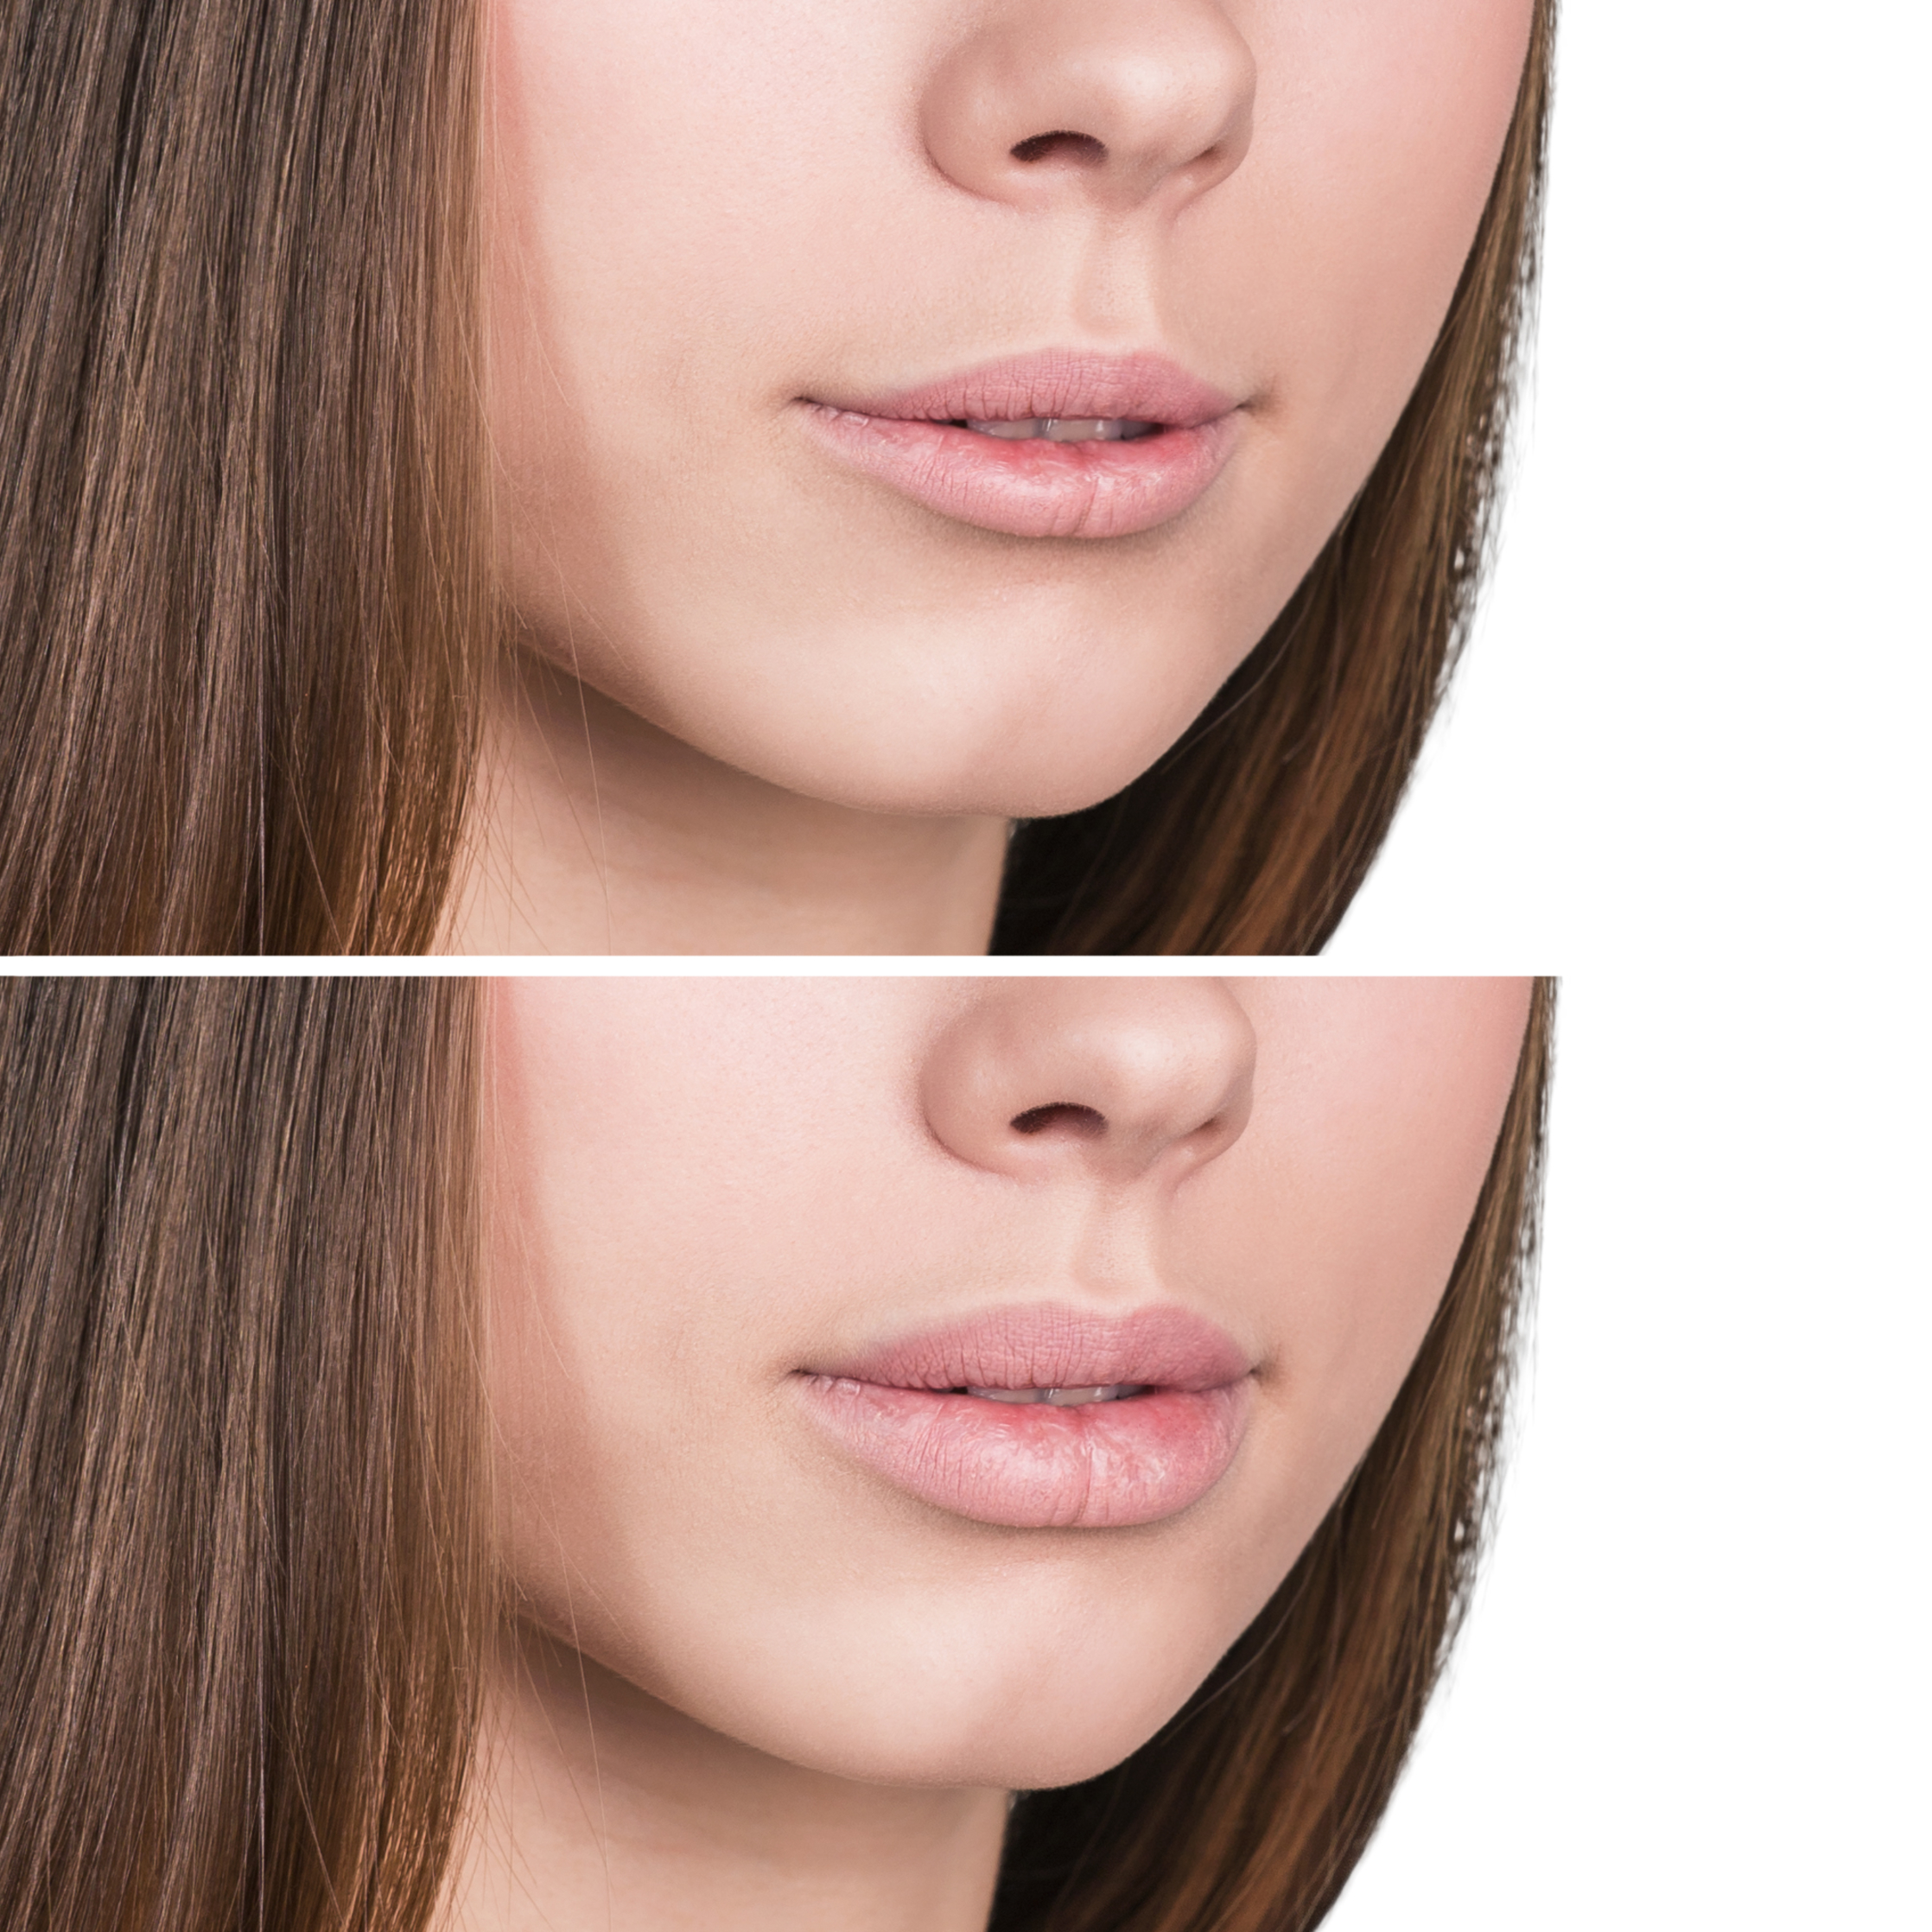 Natural Ways To Permanently Plump Lips